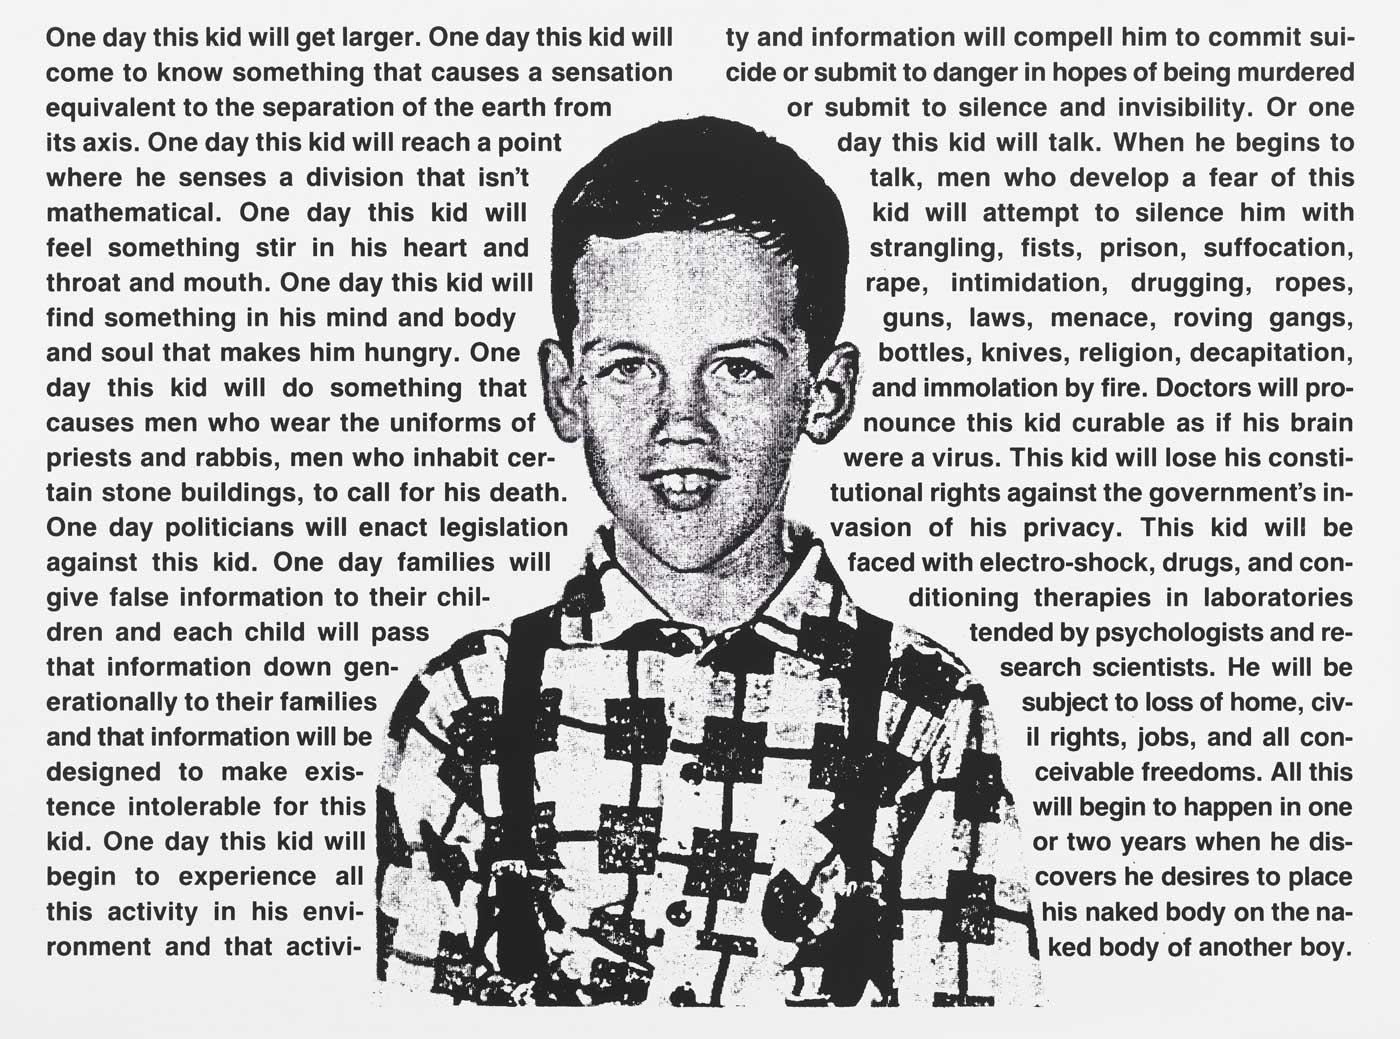 David Wojnarowicz, Untitled (One day this kid . . .), 1990.